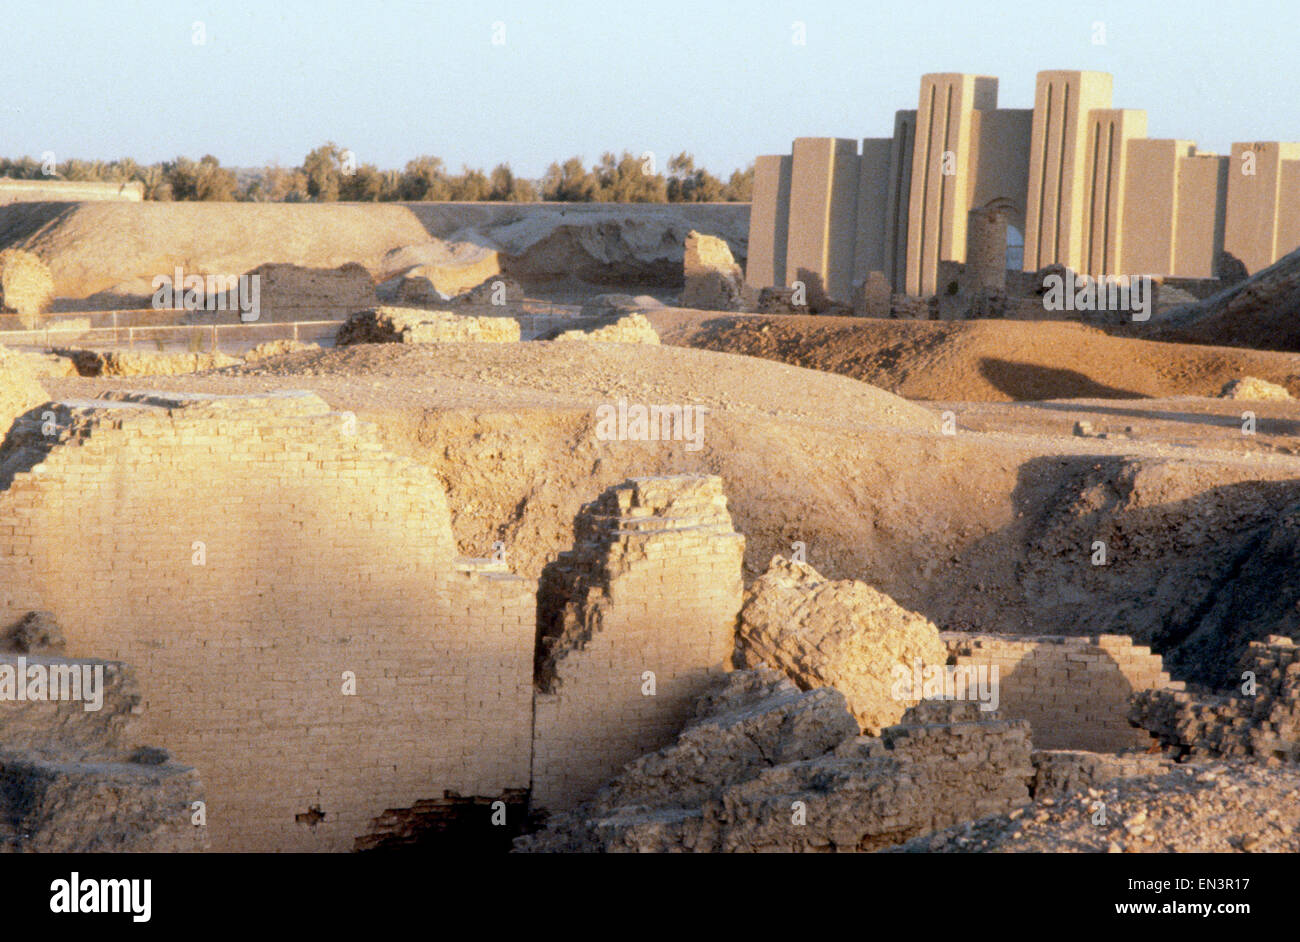 historic ancient Mesopotamian ruins of Babylon in Iraq Middle East - Stock Image